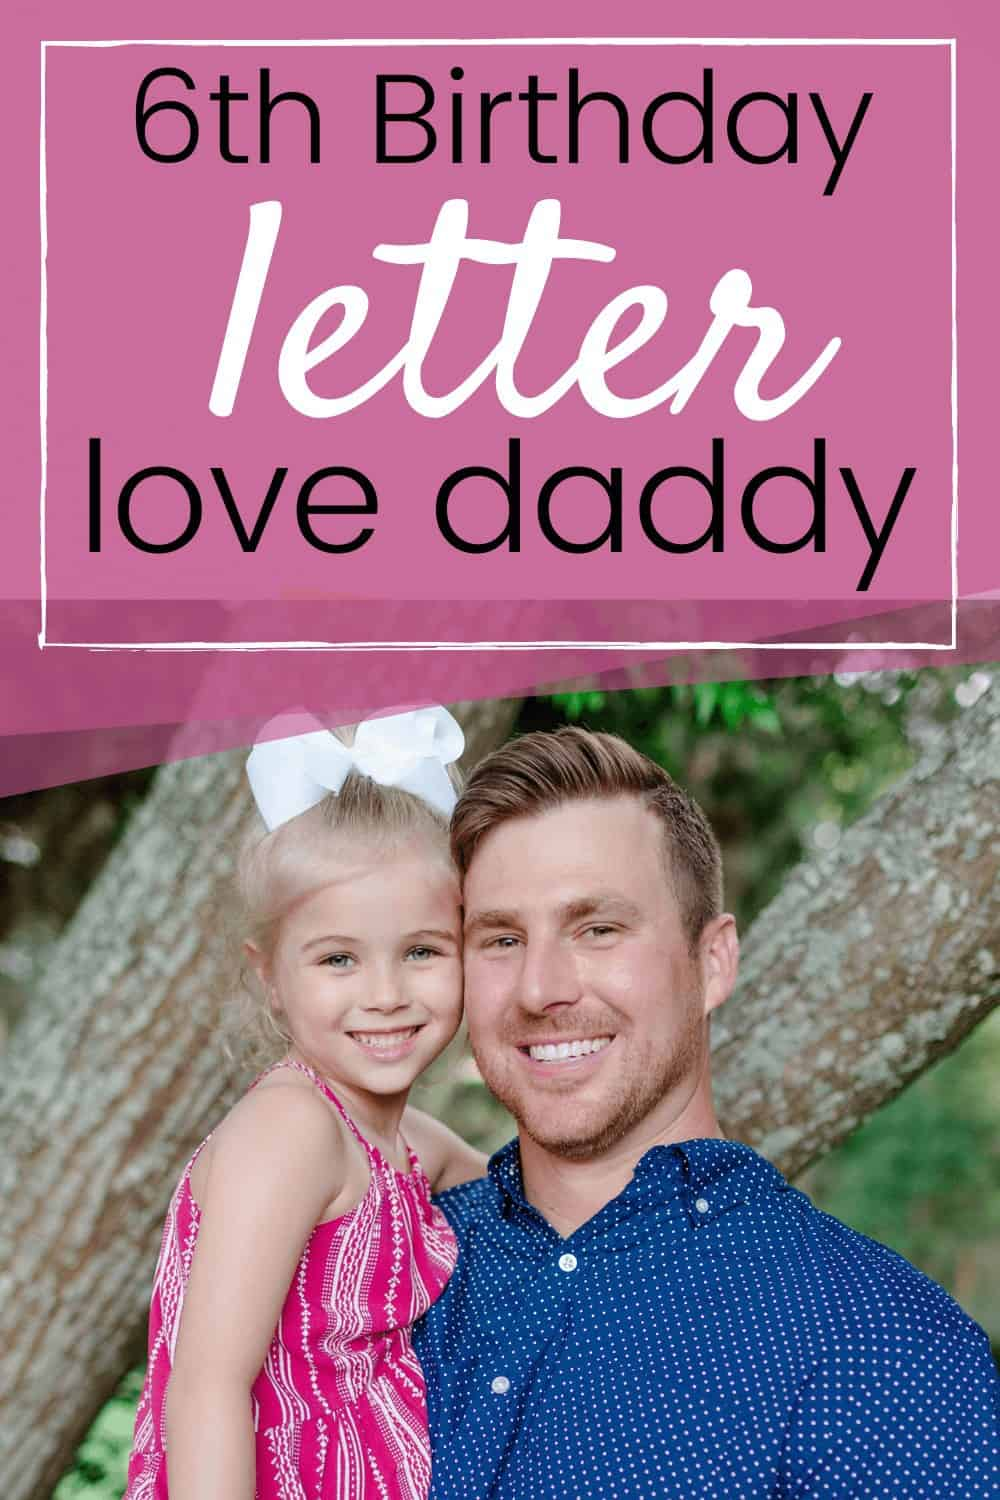 A 6th birthday letter to daughter from father - Tess's 6th birthday letter from Daddy on her 6th Birthday